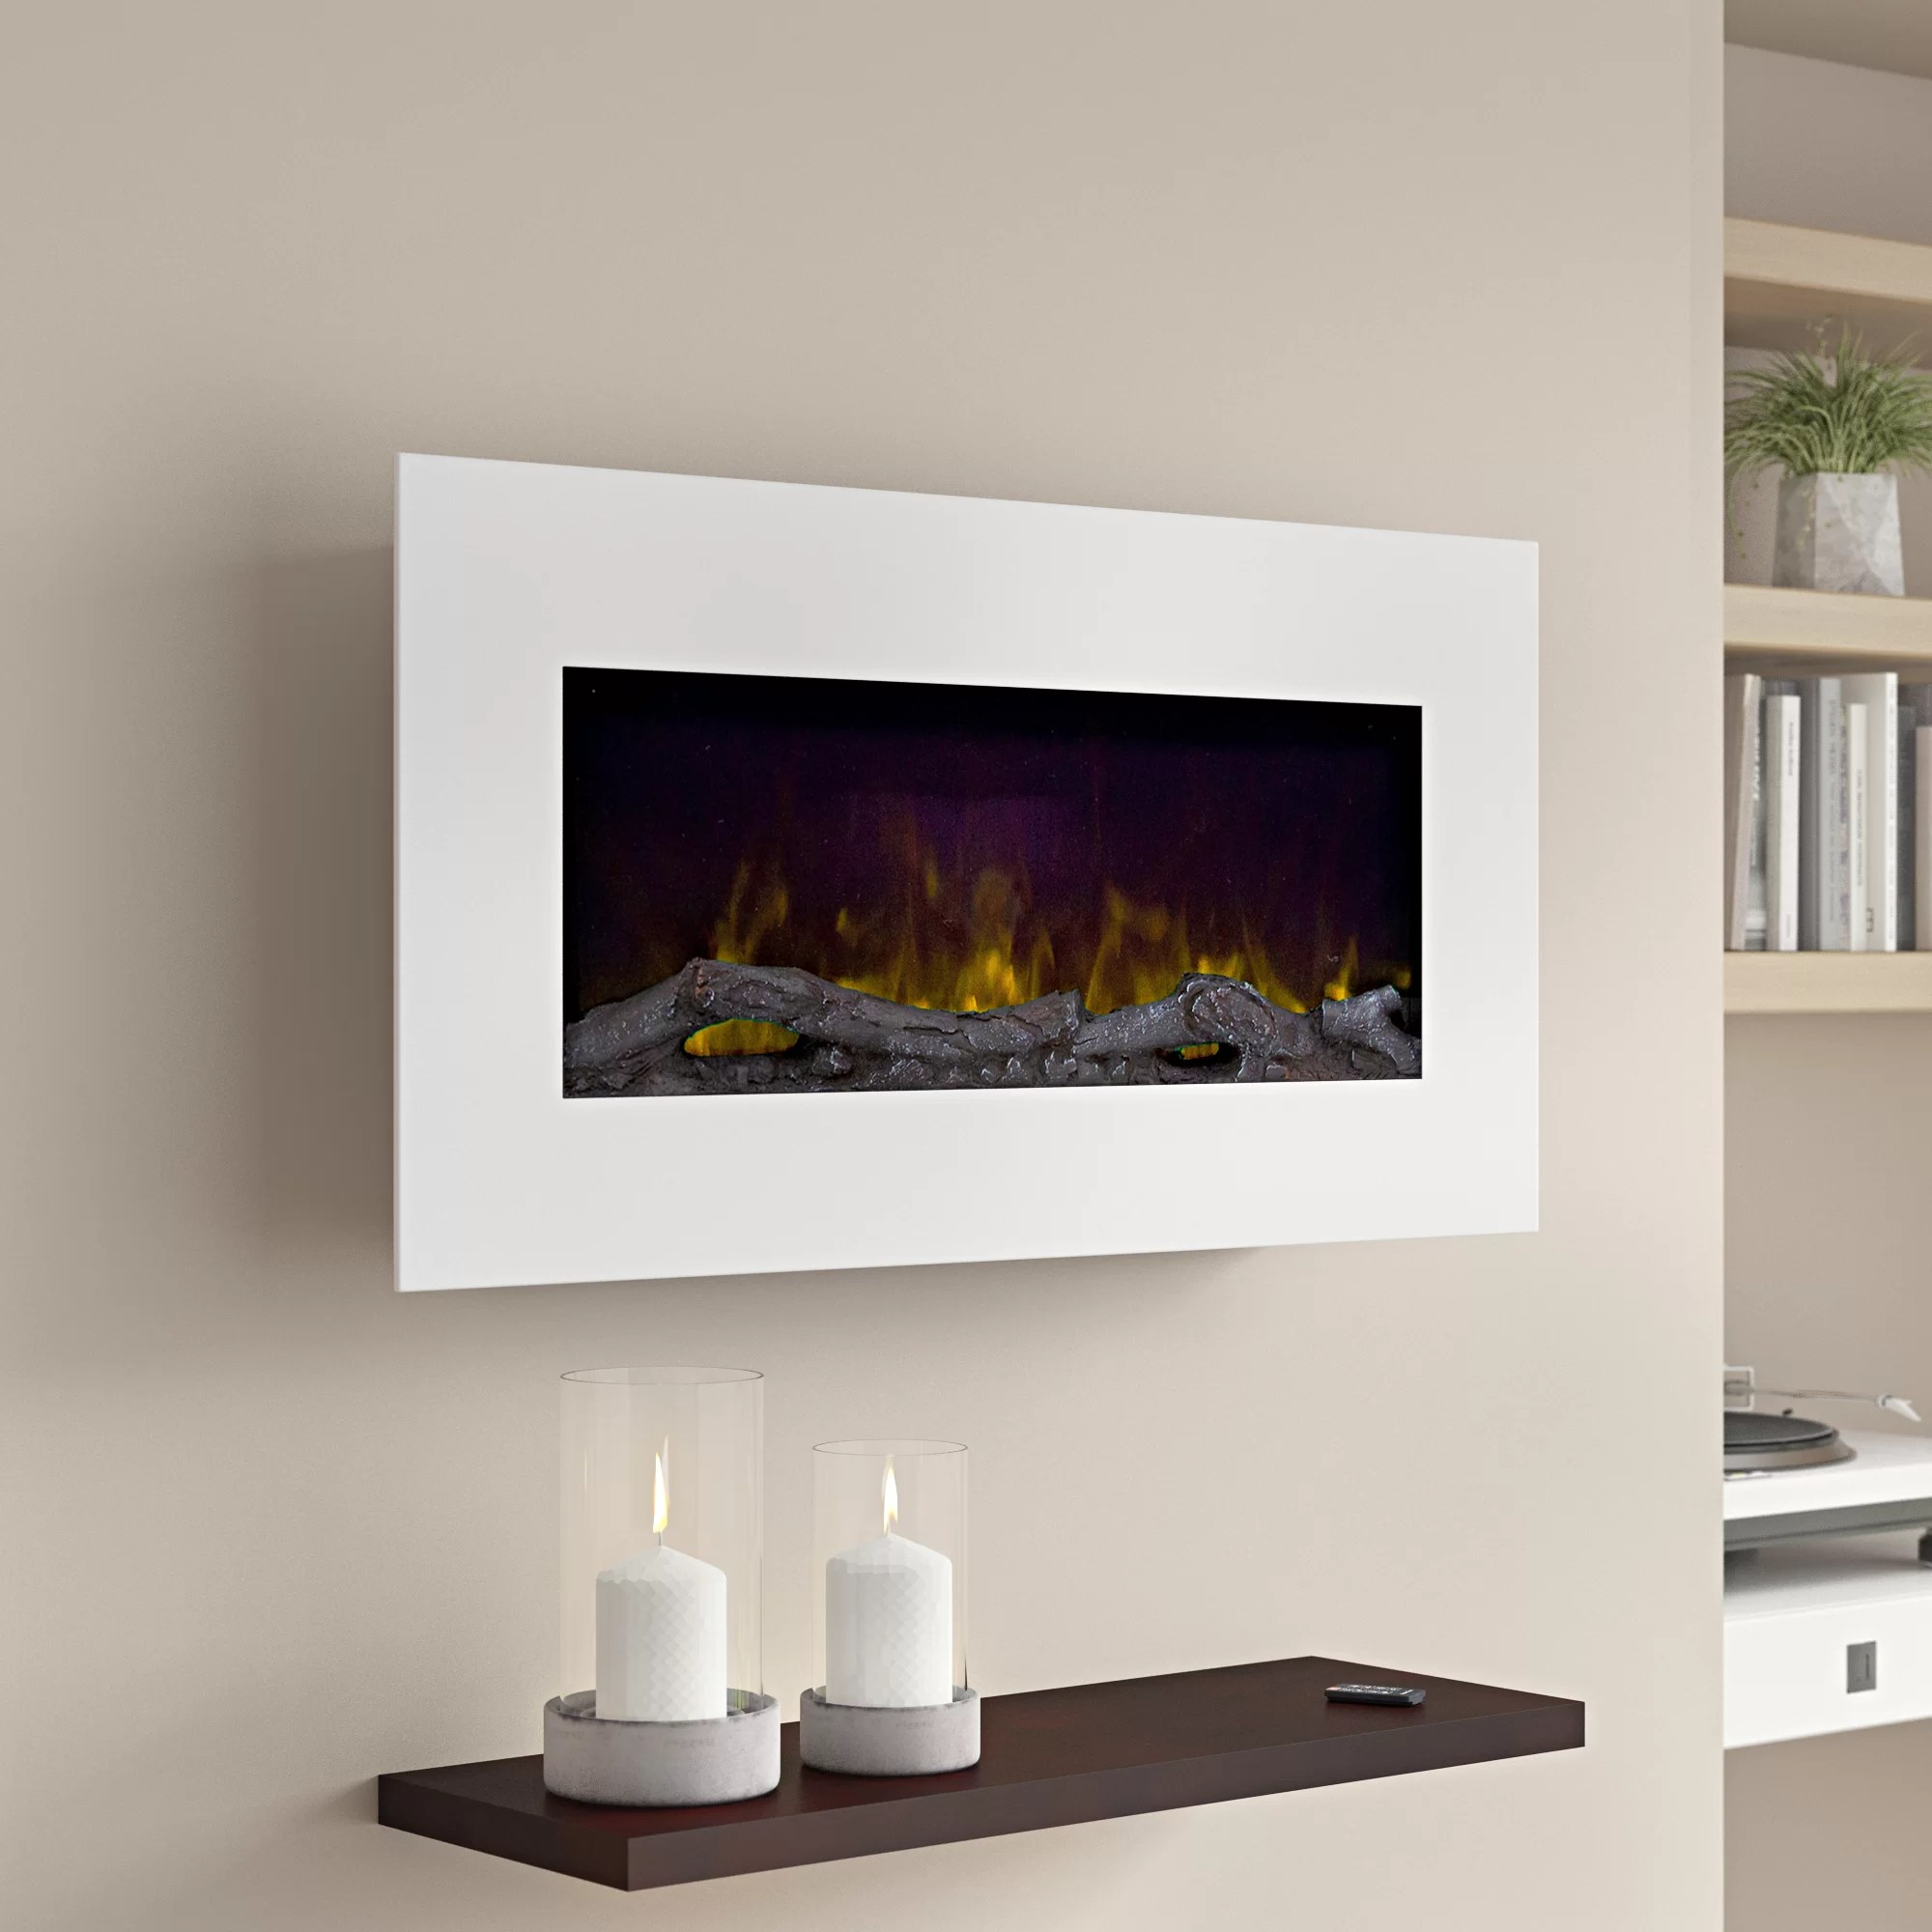 Wall Mount Fireplaces Bedfo Led Wall Mounted Electric Fireplace